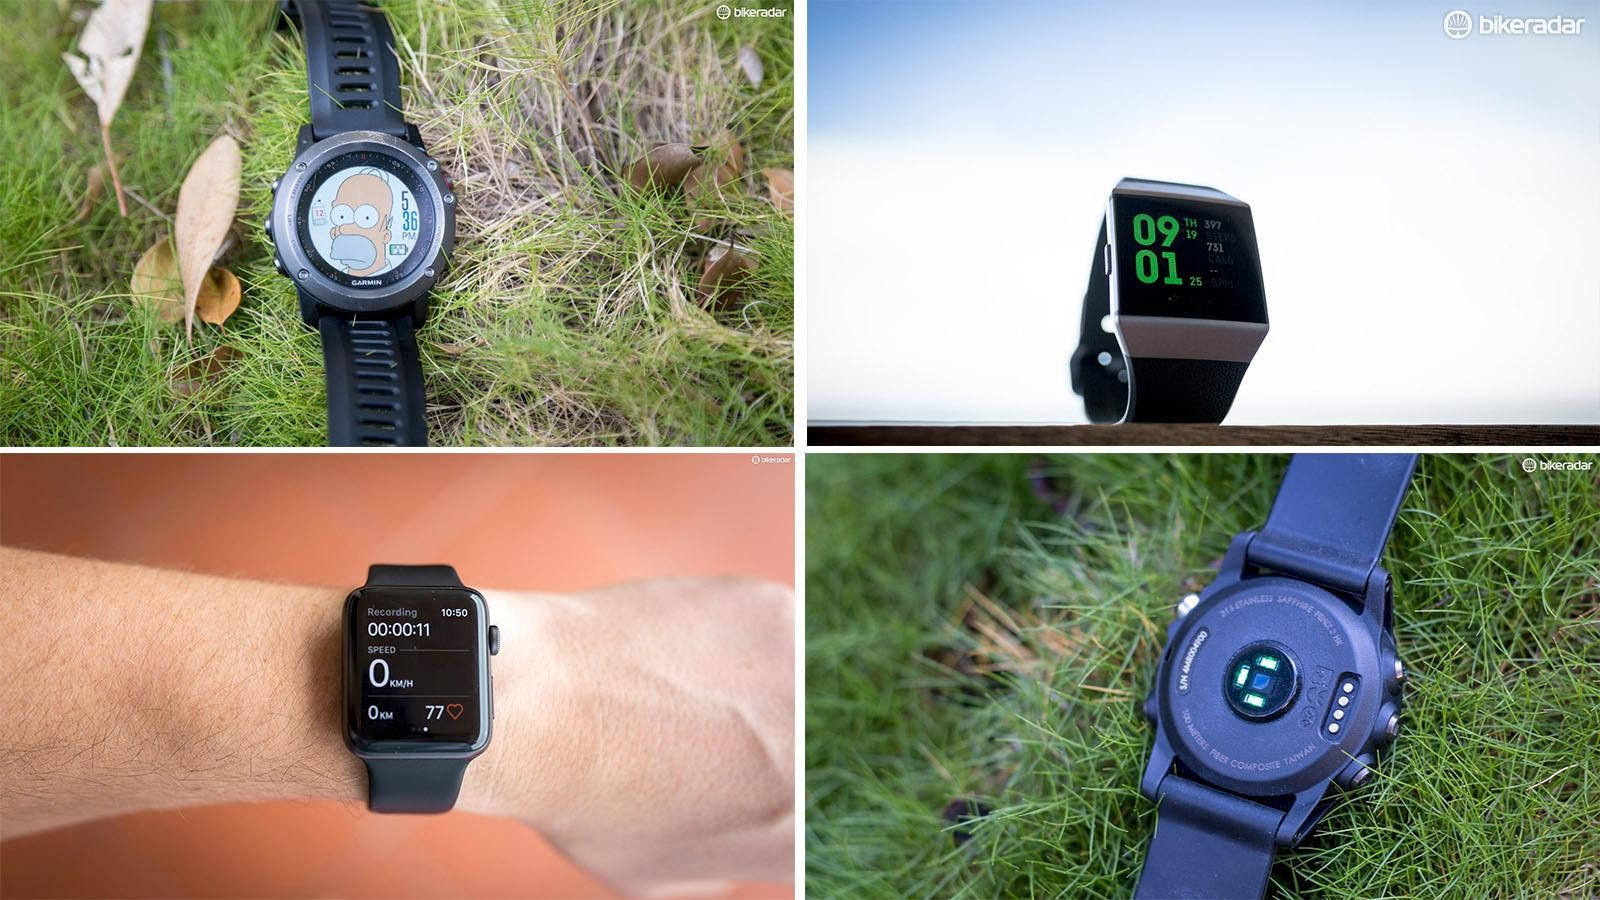 GPS watches are becoming pretty powerful and rival some head units with their functionality